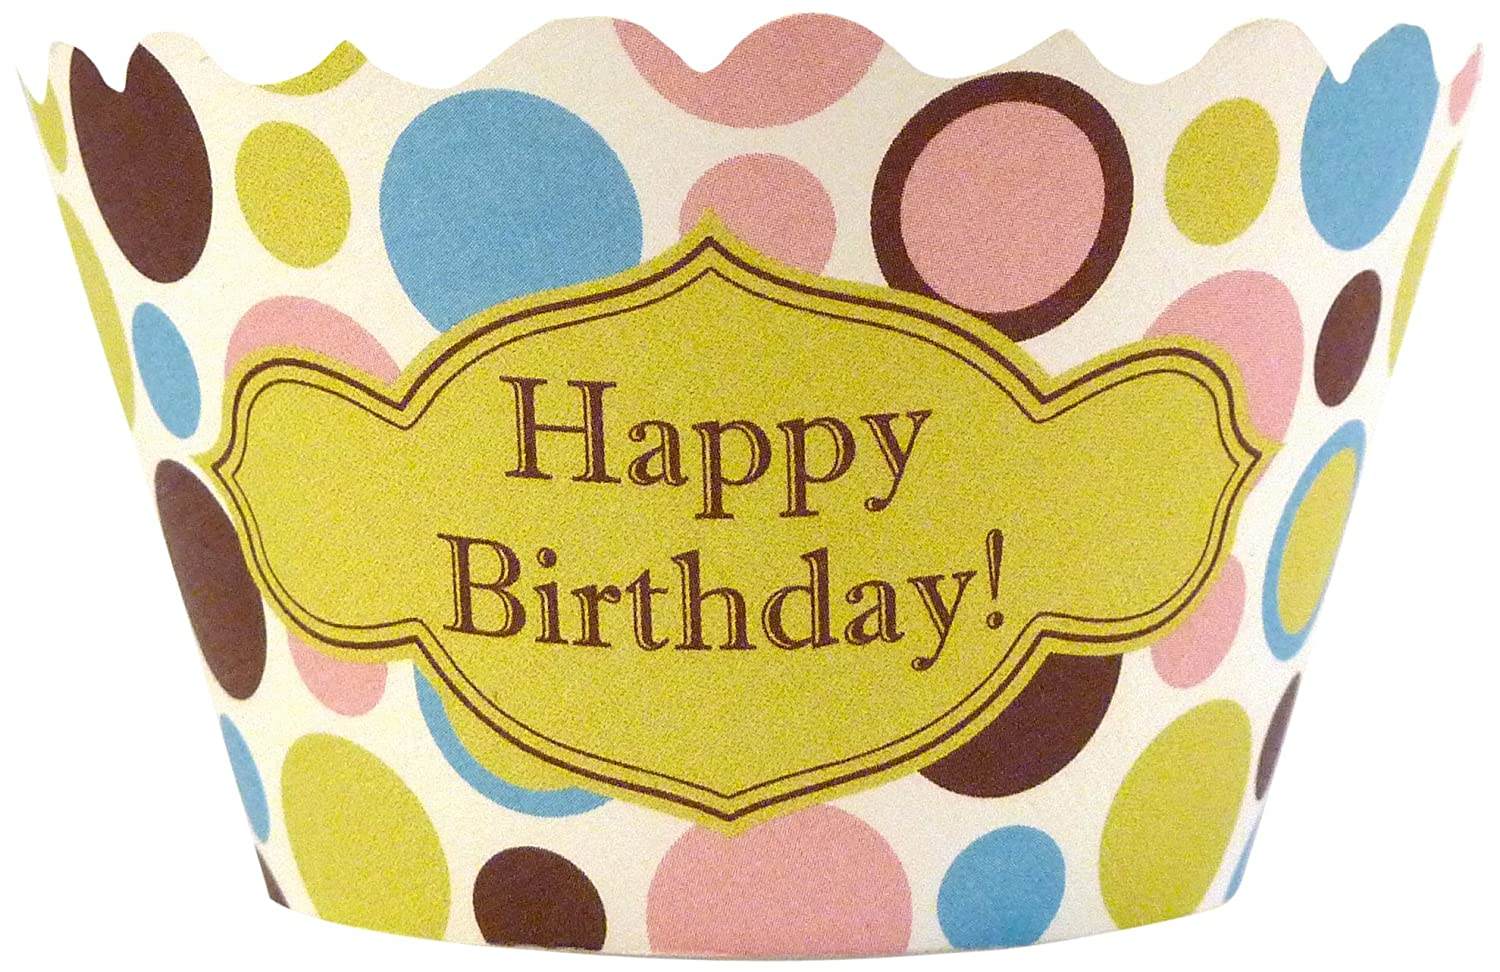 Bella Couture Happy Birthday Polkadot Cupcake Wrappers